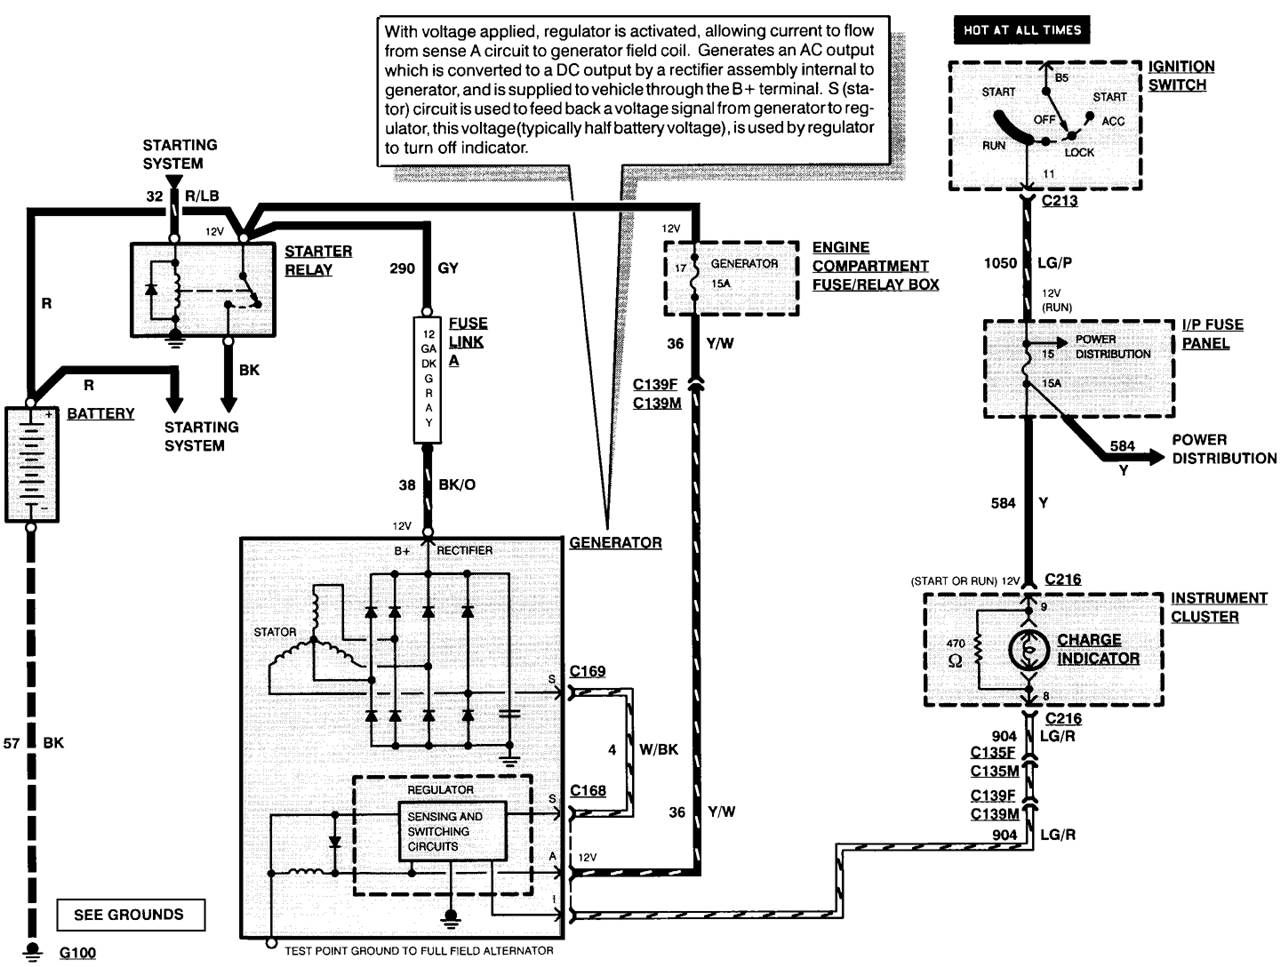 Ford Alternator Wiring Diagrams on